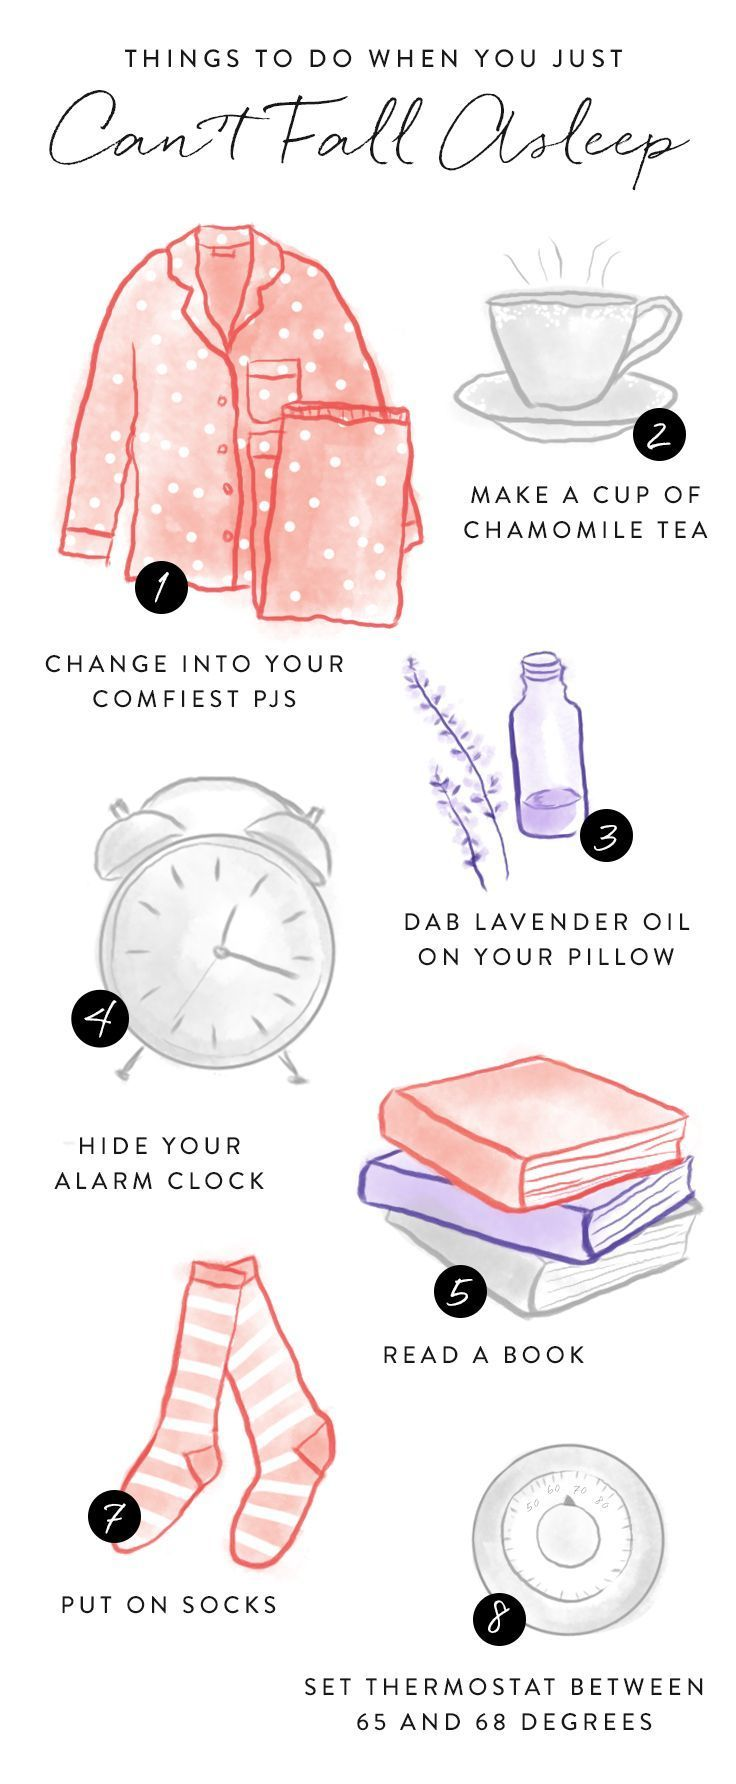 Try these tactics when you can't fall asleep to induce snoozing.